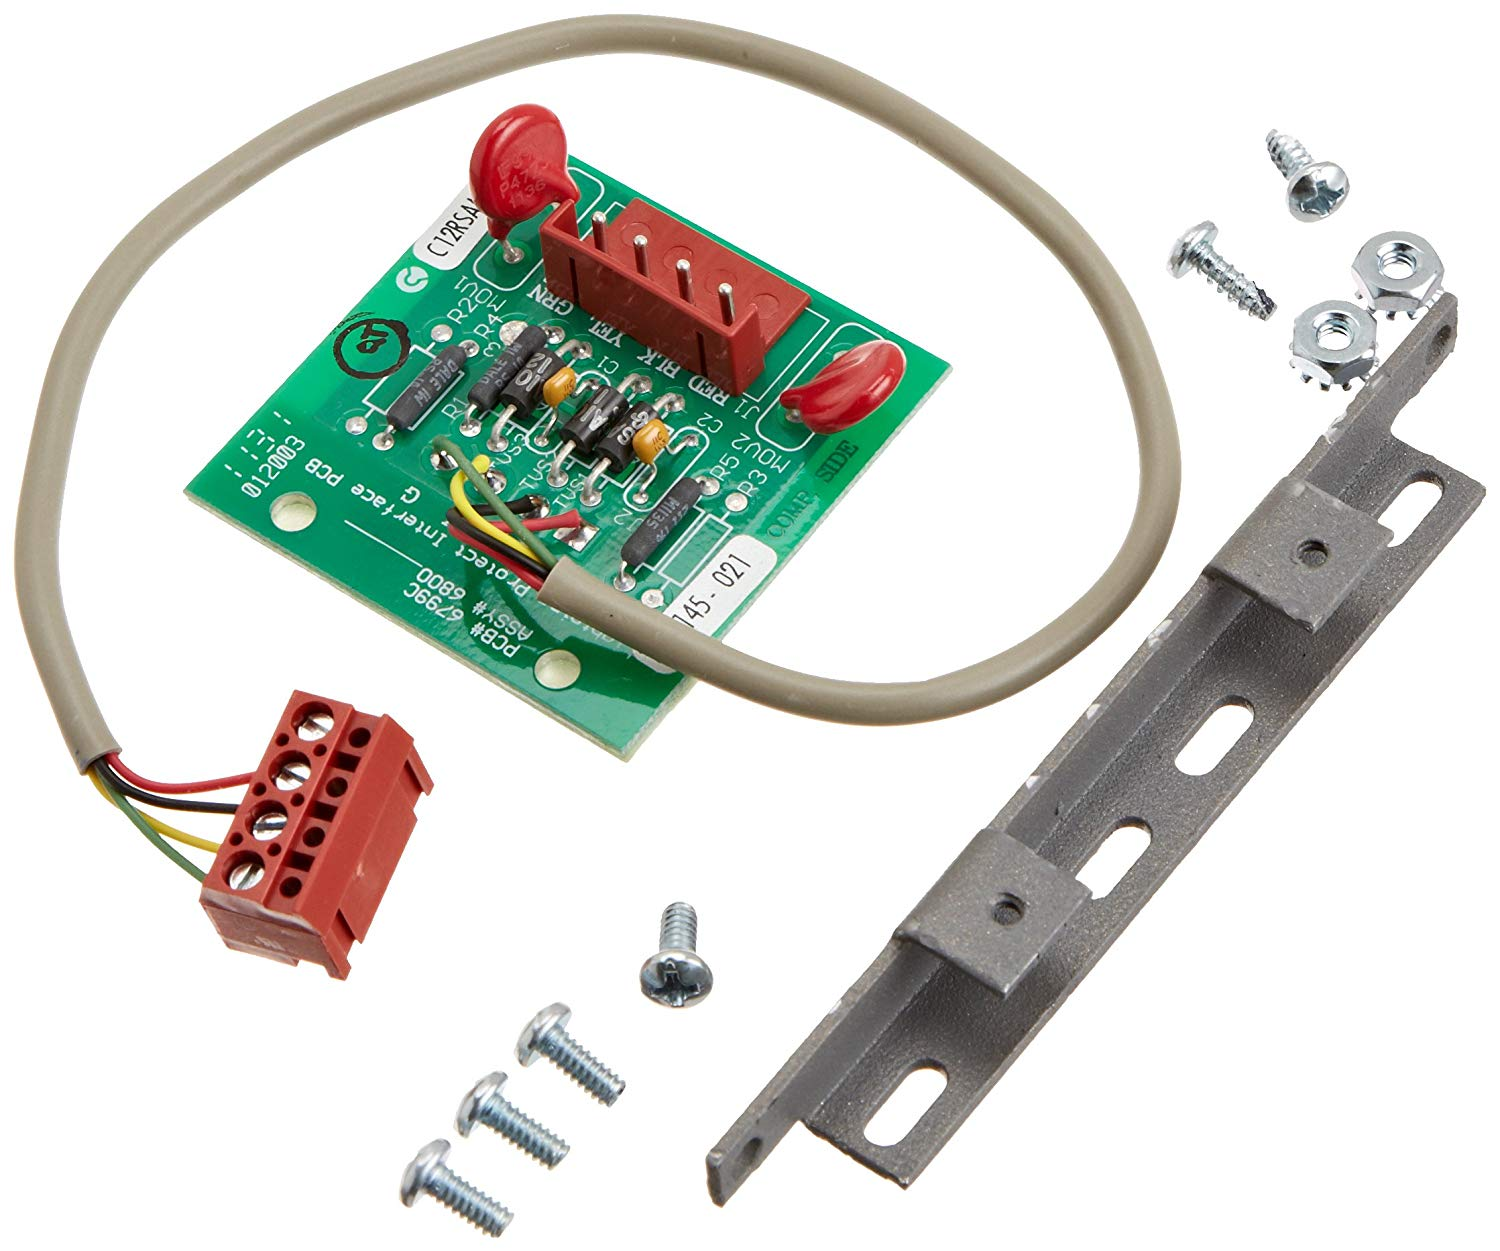 Cheap Cal Spa Circuit Board Find Deals On Replacement Boards Get Quotations Zodiac 6585 Surge Protection Printed For Aqualink Rs Pool And Control